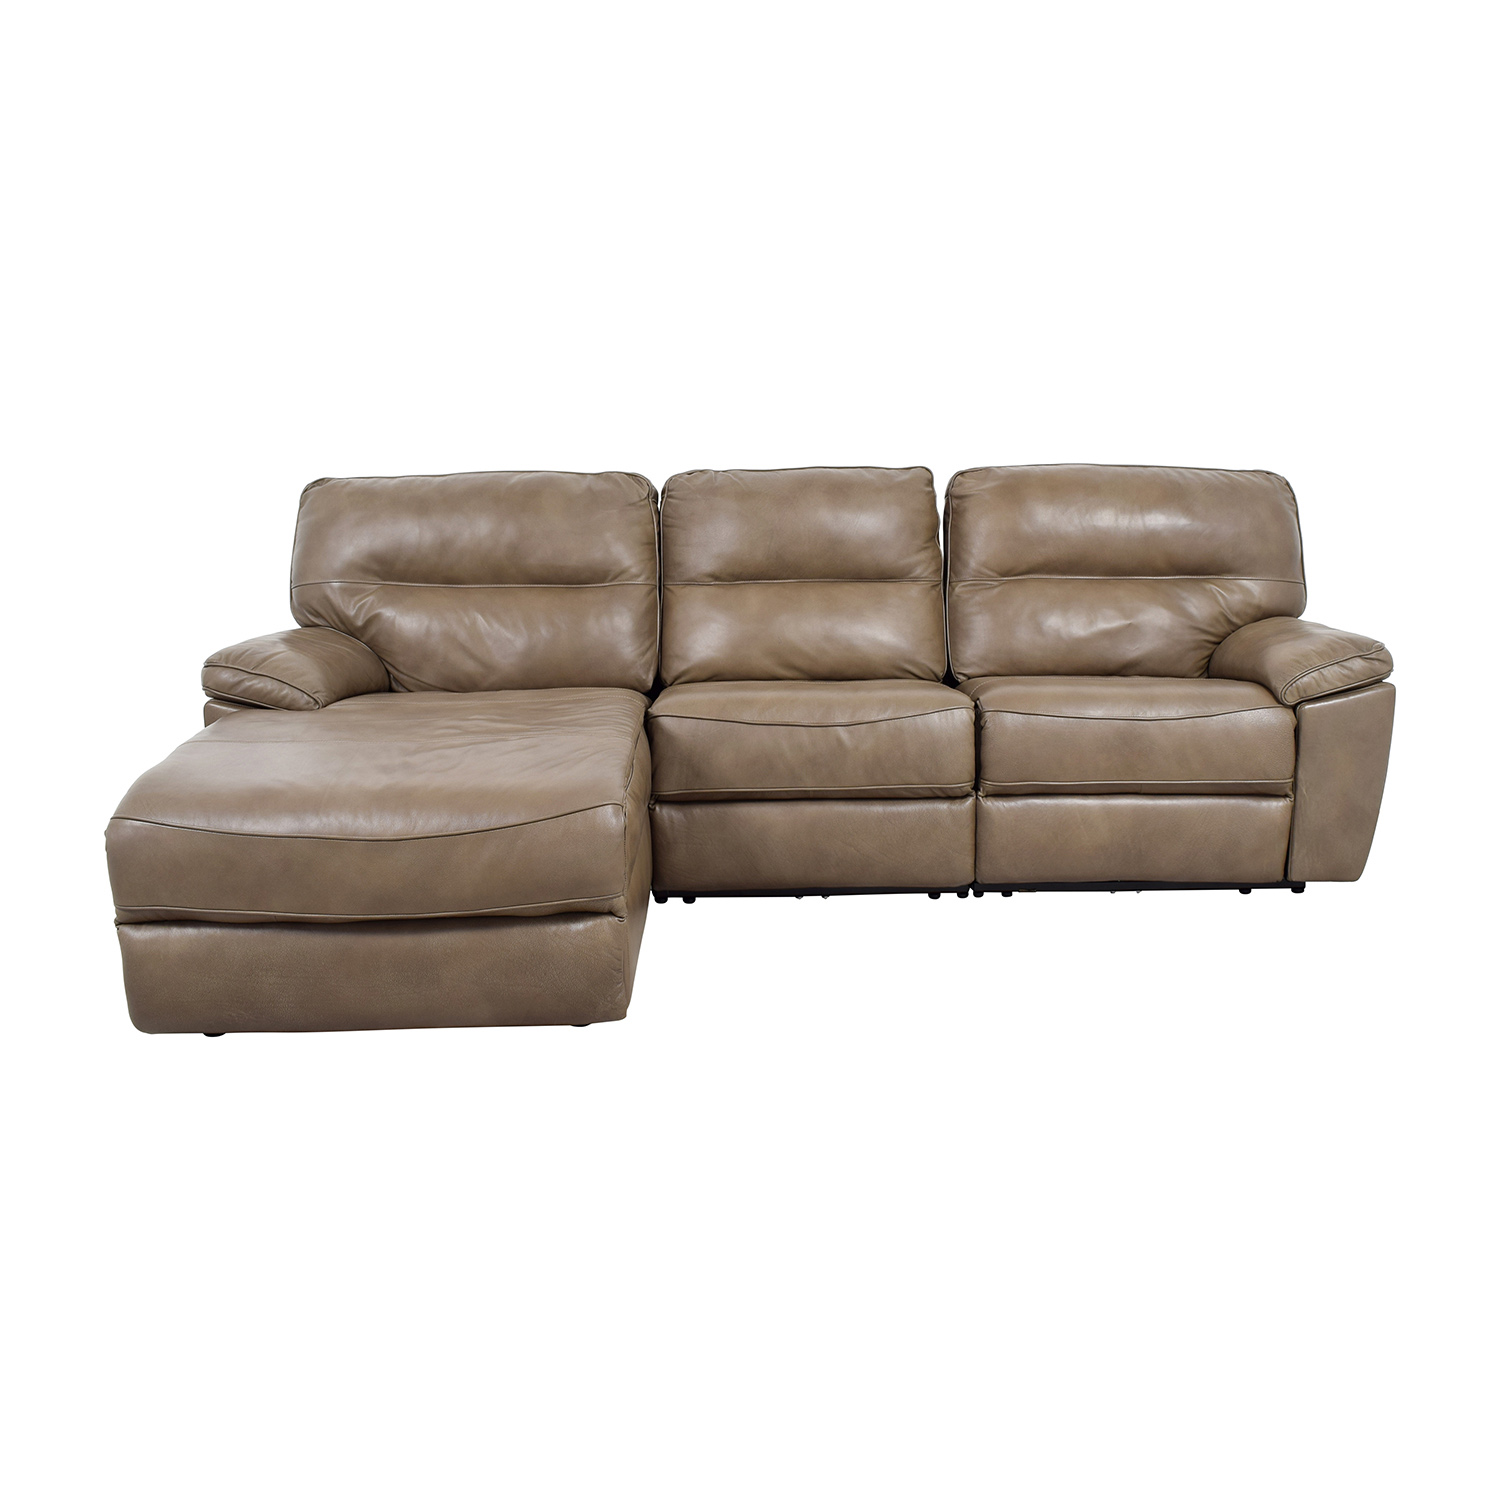 Chaise recliner sofa bed sofa the honoroak for Chaise leather lounge